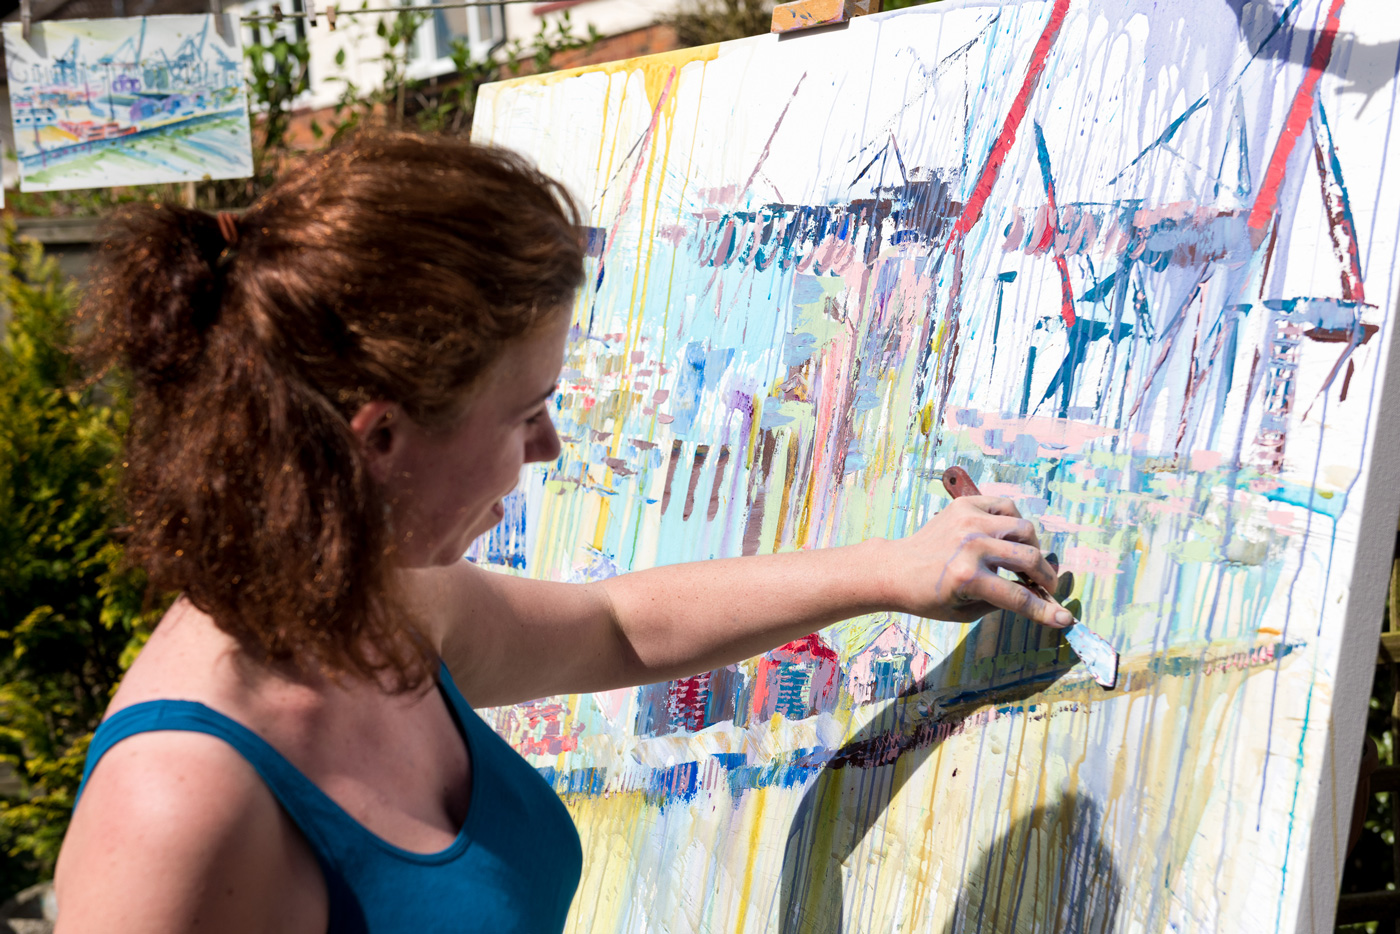 Zsuzsanna Pataki at work with a palette knife